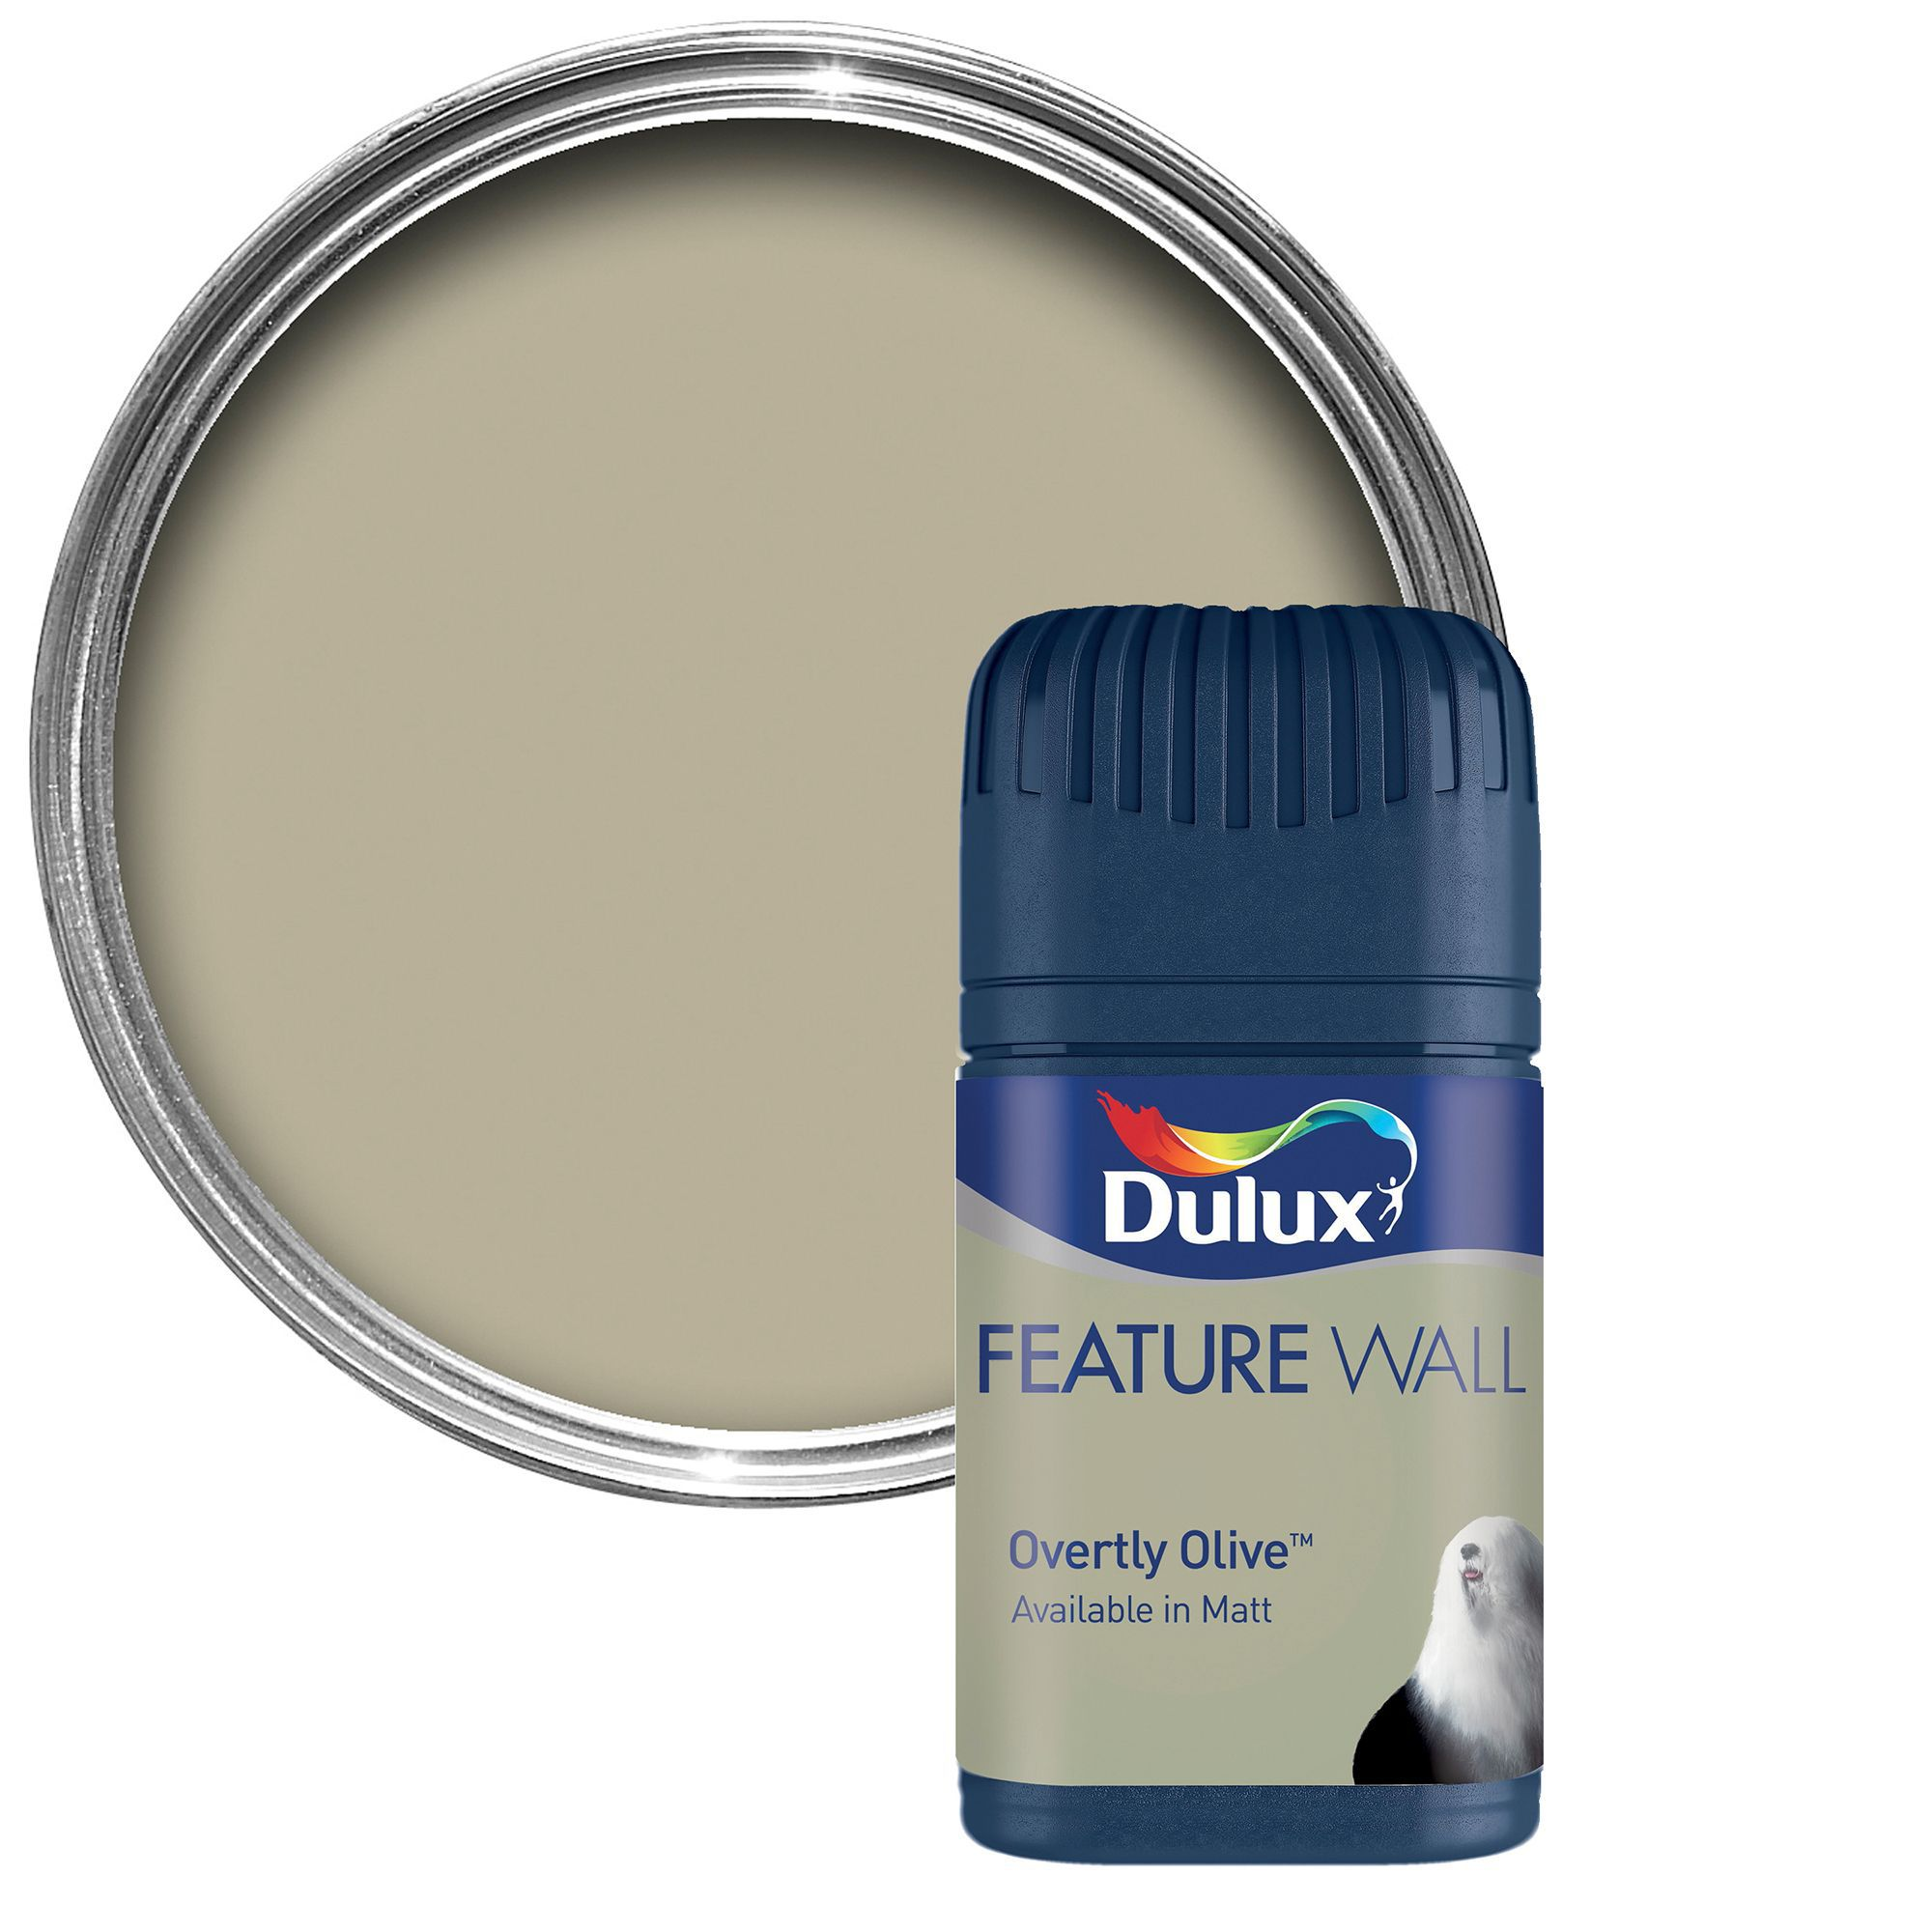 Overtly Olive Kitchen Paint: Dulux Feature Wall Overtly Olive Matt Emulsion Paint 0.05L